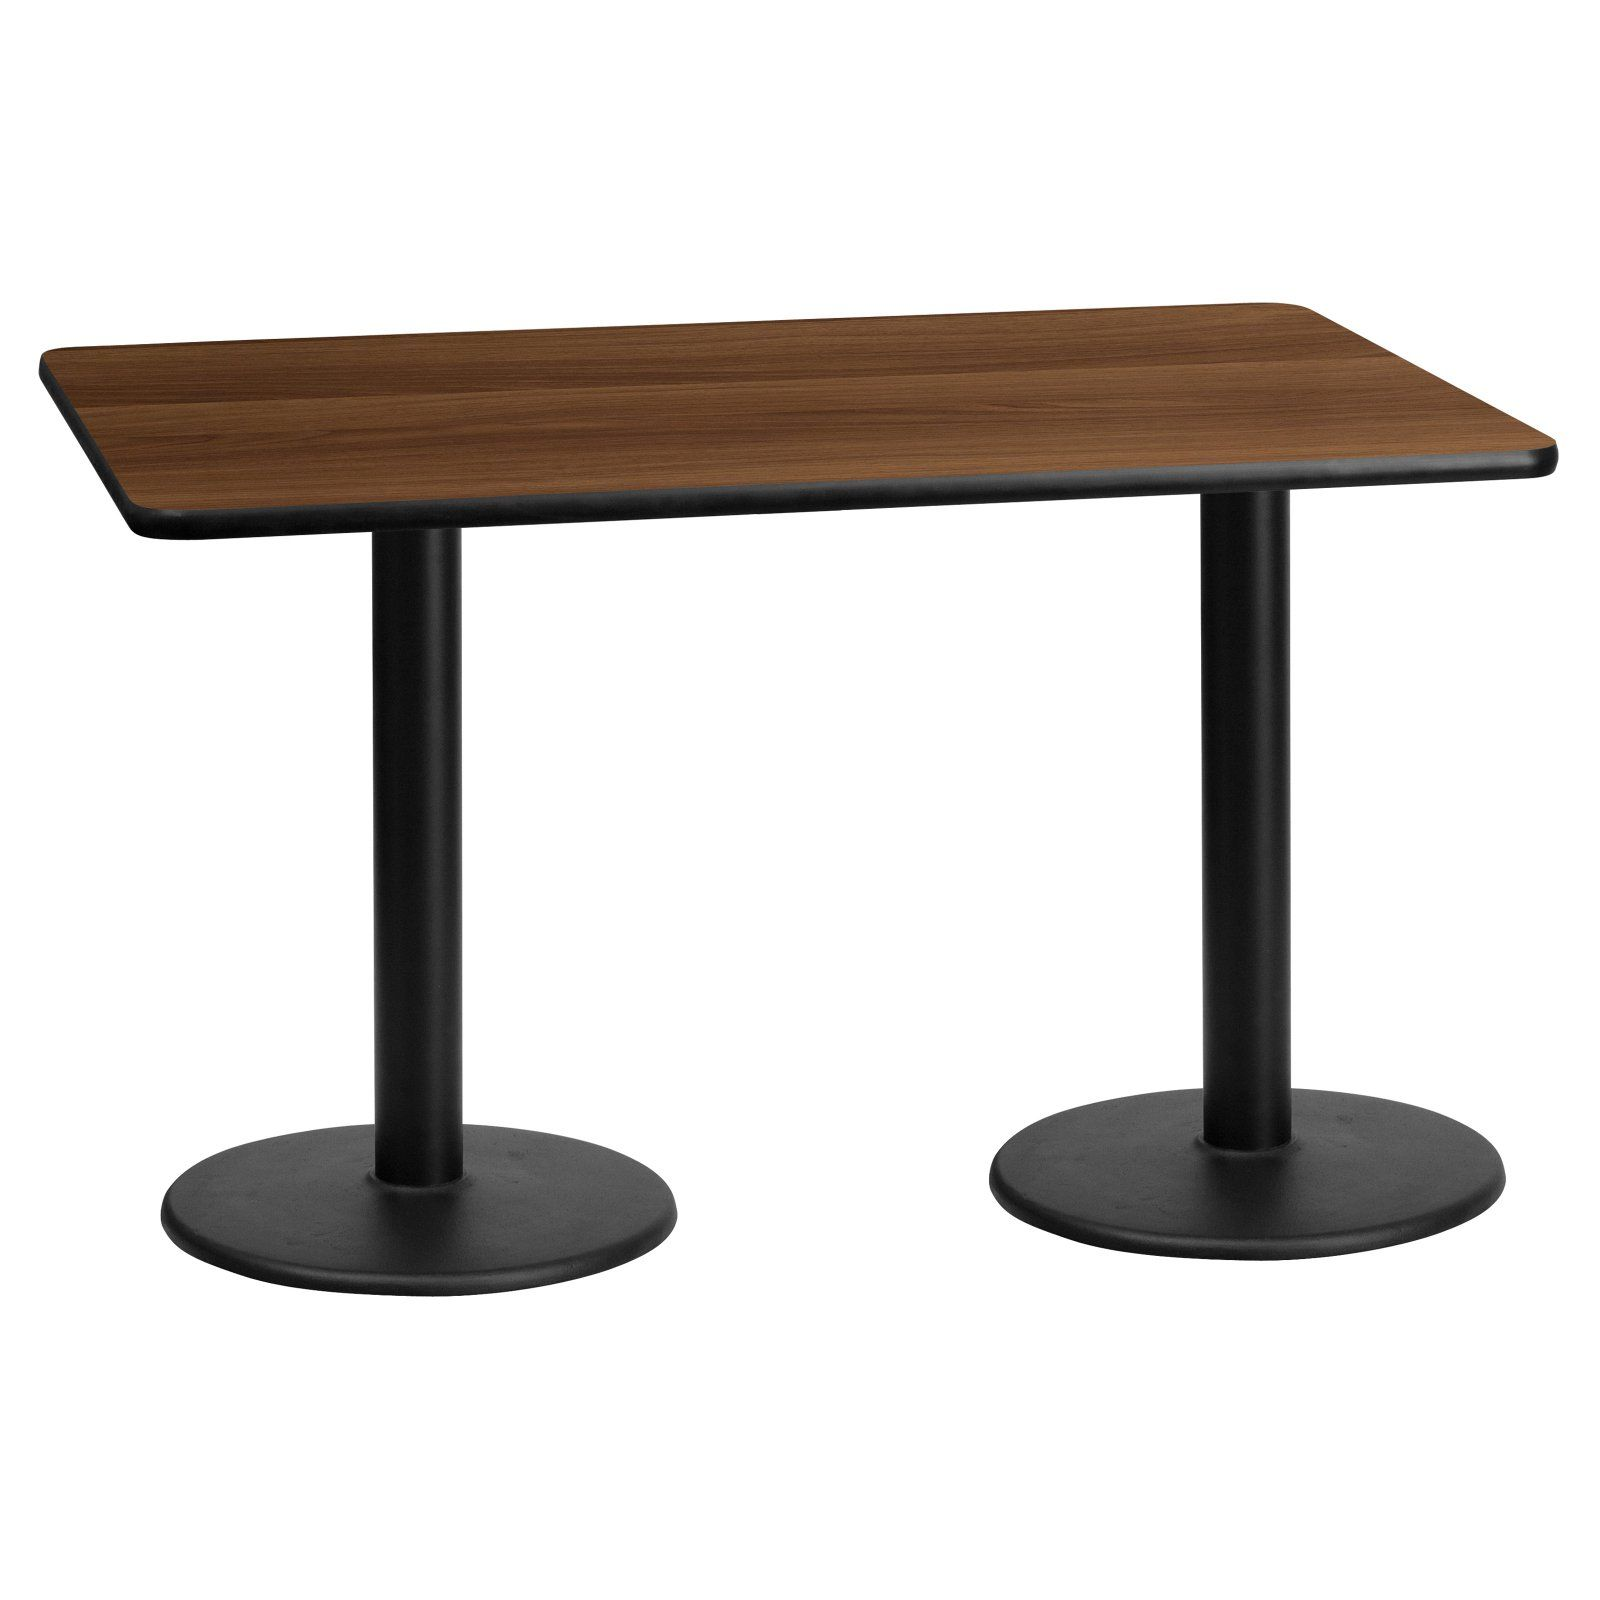 Flash Furniture 30 X 60 In Rectangular Laminate Dining Table With Dual Round Bases Laminate Table Top Dining Table Table